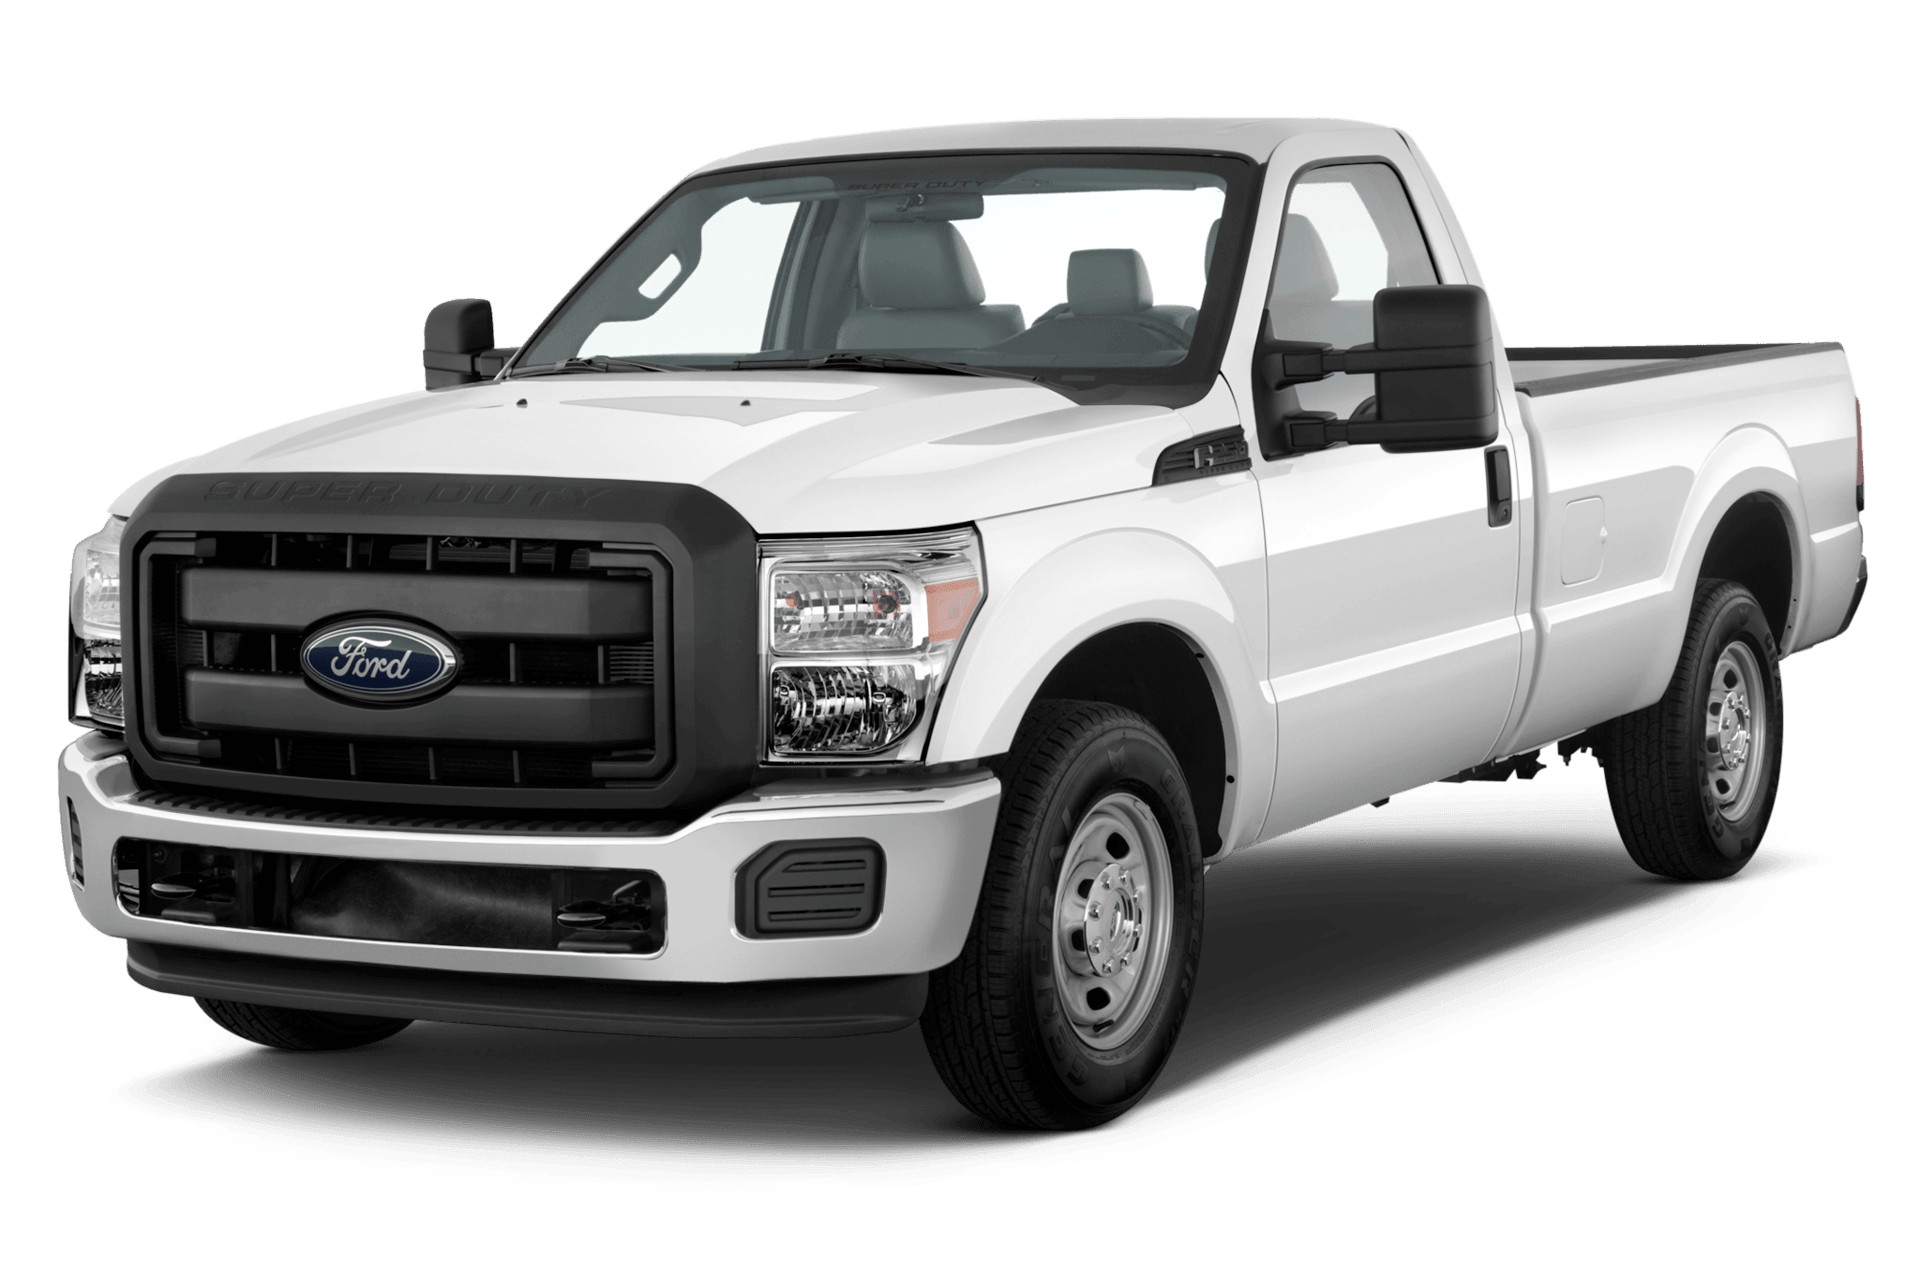 Used Ford Truck near Balgonie